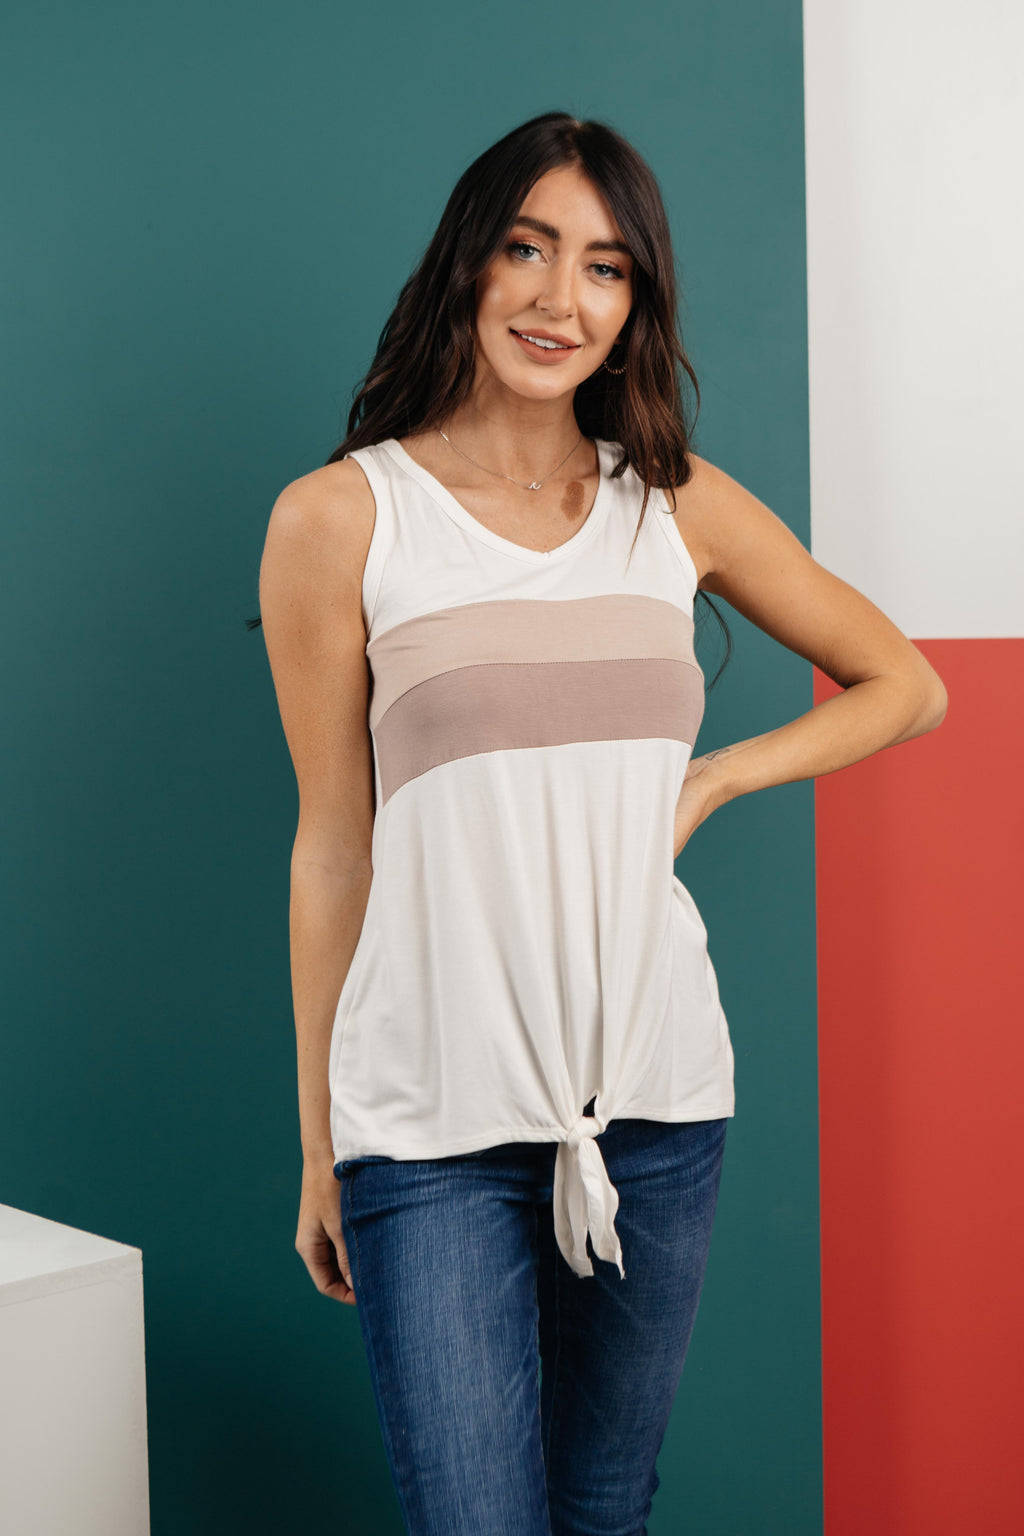 Keep Your Stripes Close In Ivory-1-15-2021, 1-5-2021, 1XL, 2XL, 3XL, Bonus, Group A, Group B, Group C, Group X, Group Z, Large, Medium, Small, Tops, XL, XS-Womens Artisan USA American Made Clothing Accessories